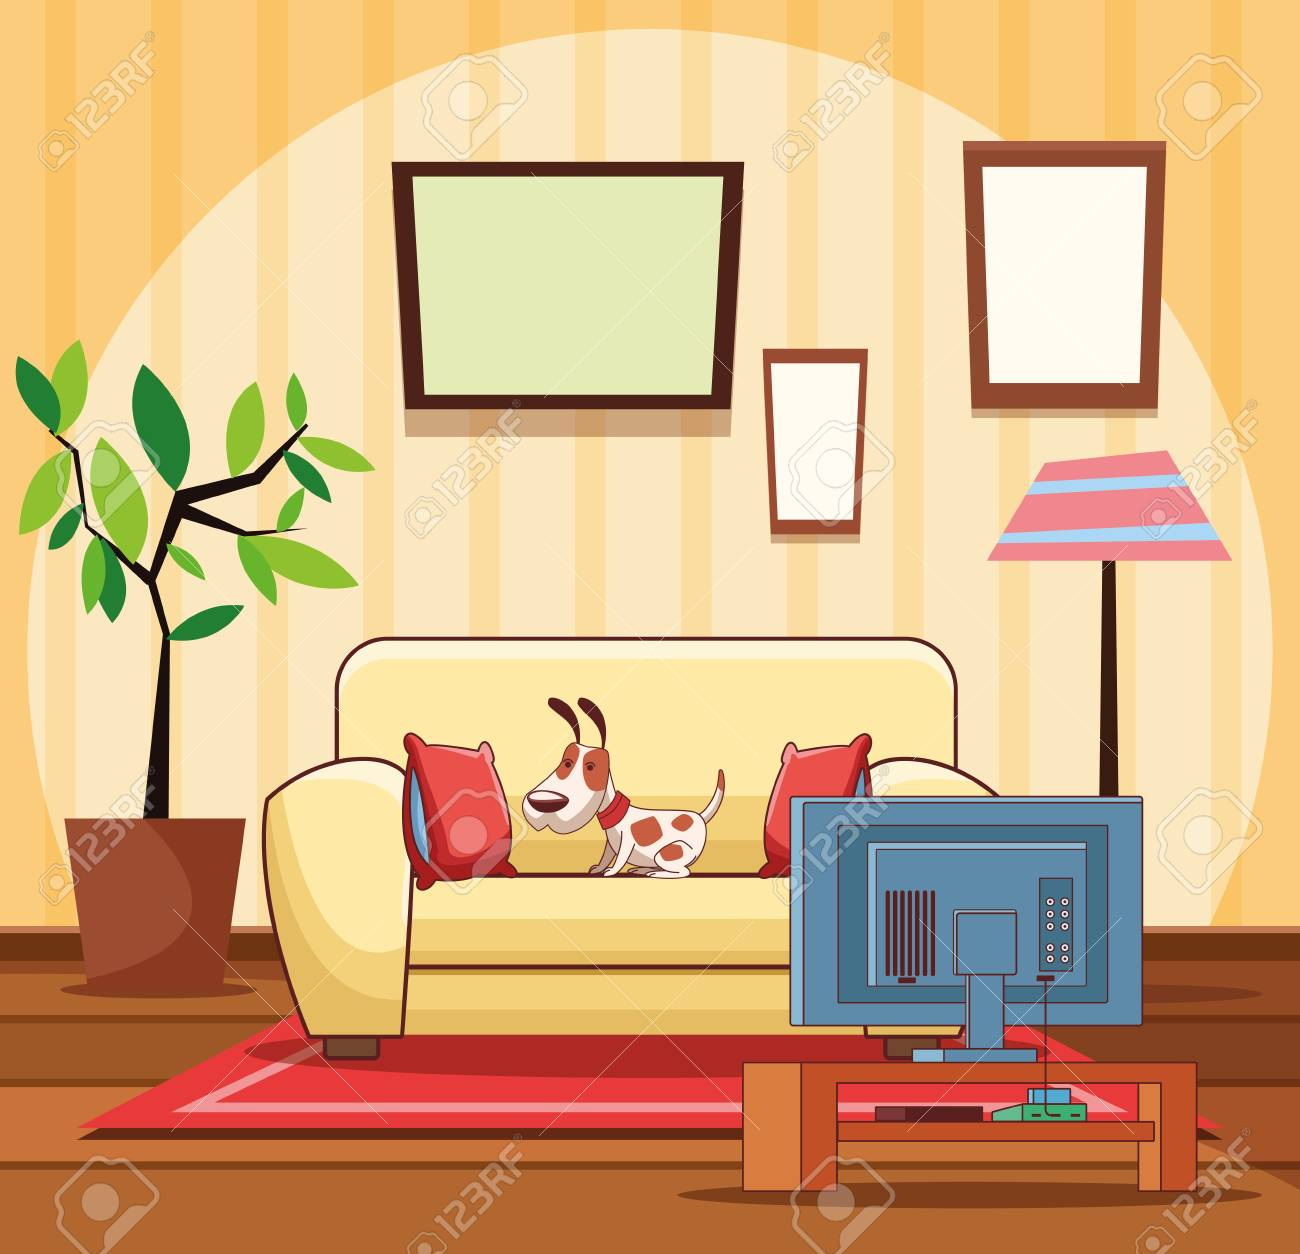 Home Living Room Interior Wit Sofa Tv And Dog Cartoon Vector Royalty Free Cliparts Vectors And Stock Illustration Image 124814645